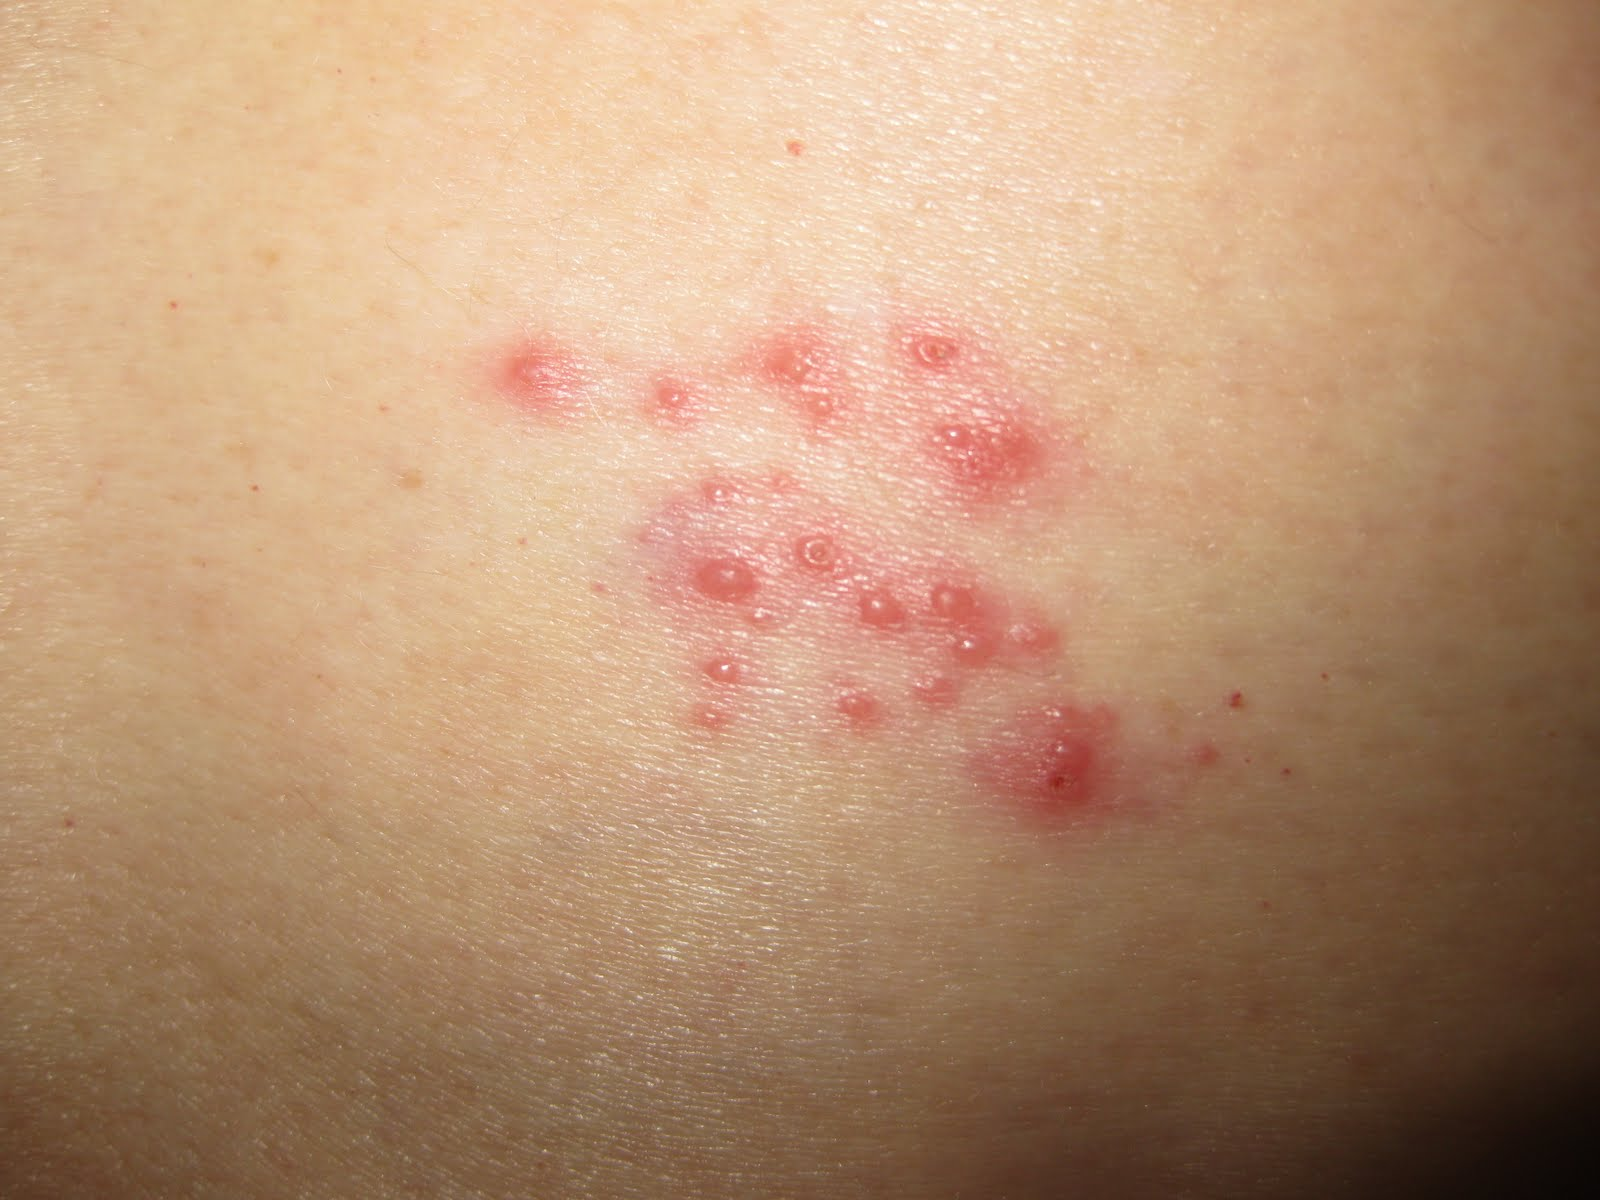 Galleries Related: Shingles On Leg